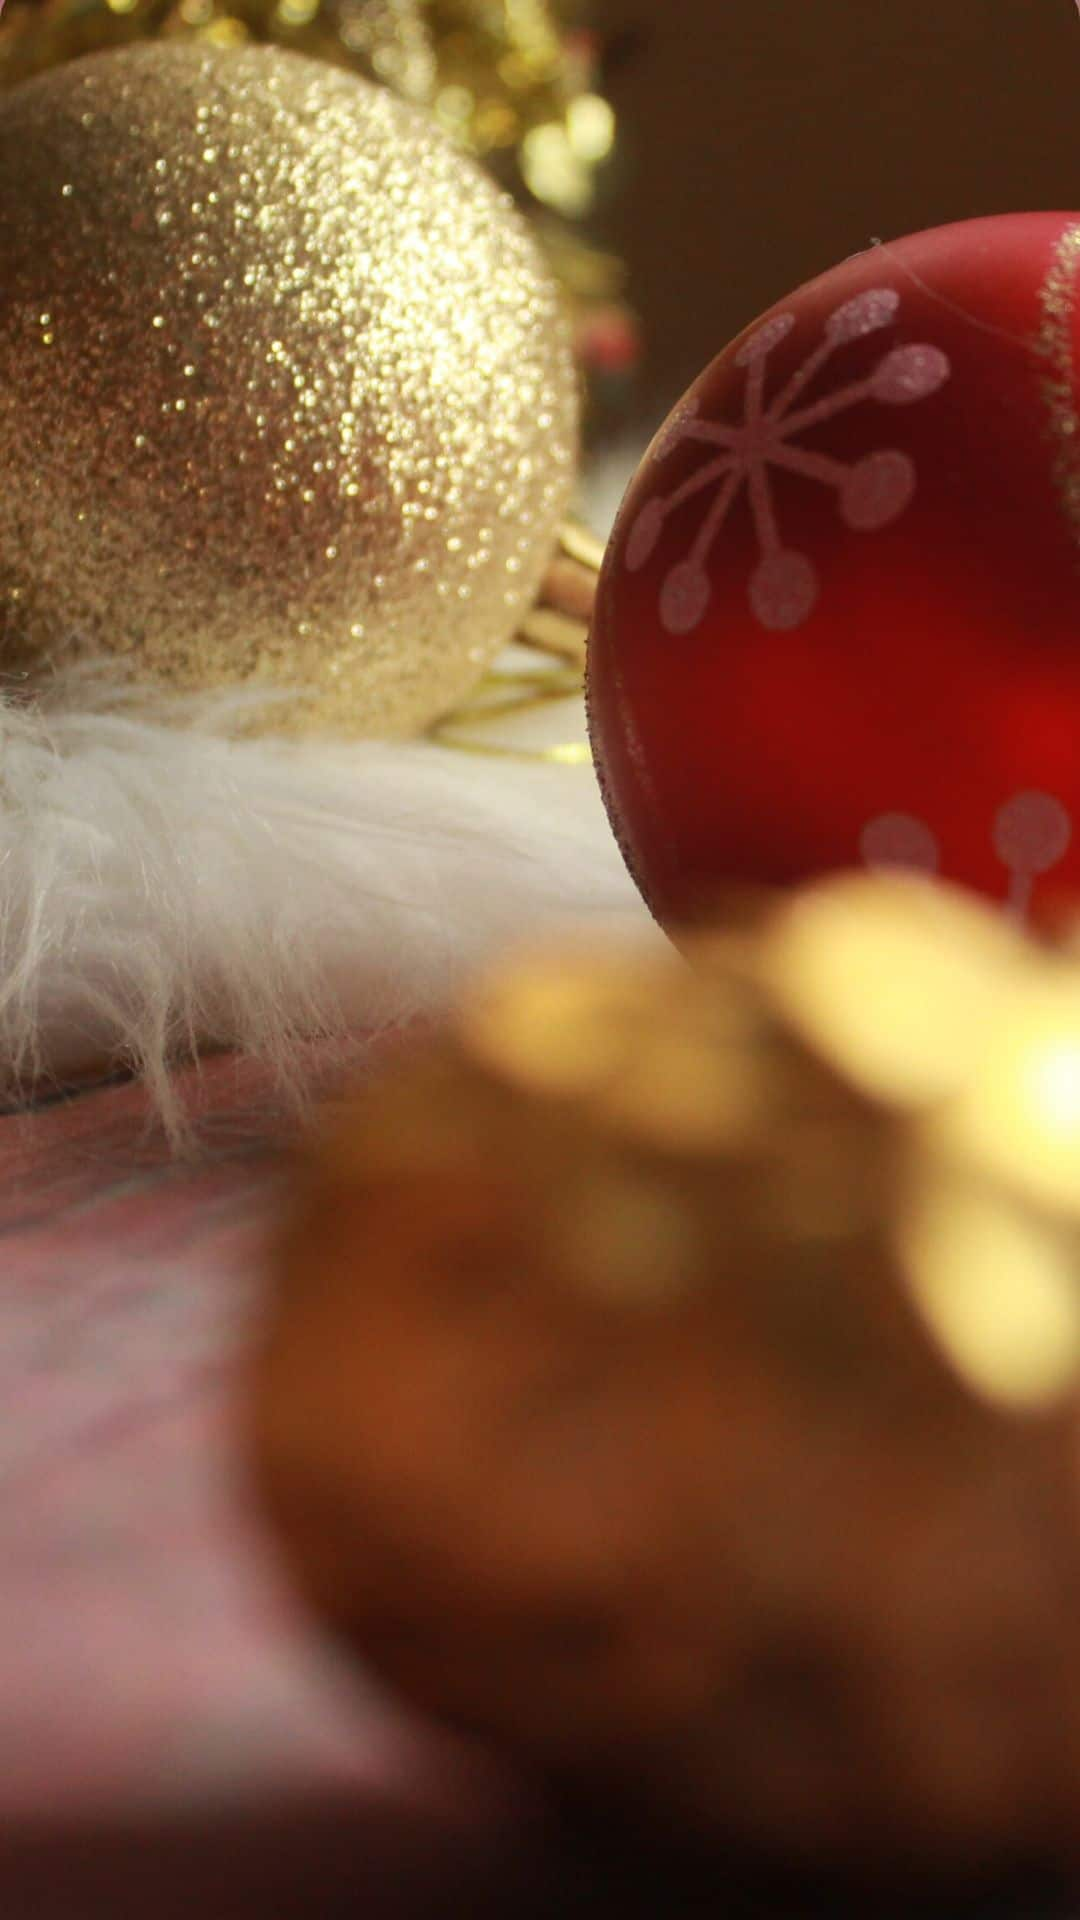 Christmas Wallpapers For iPhone Red & Gold Ornaments